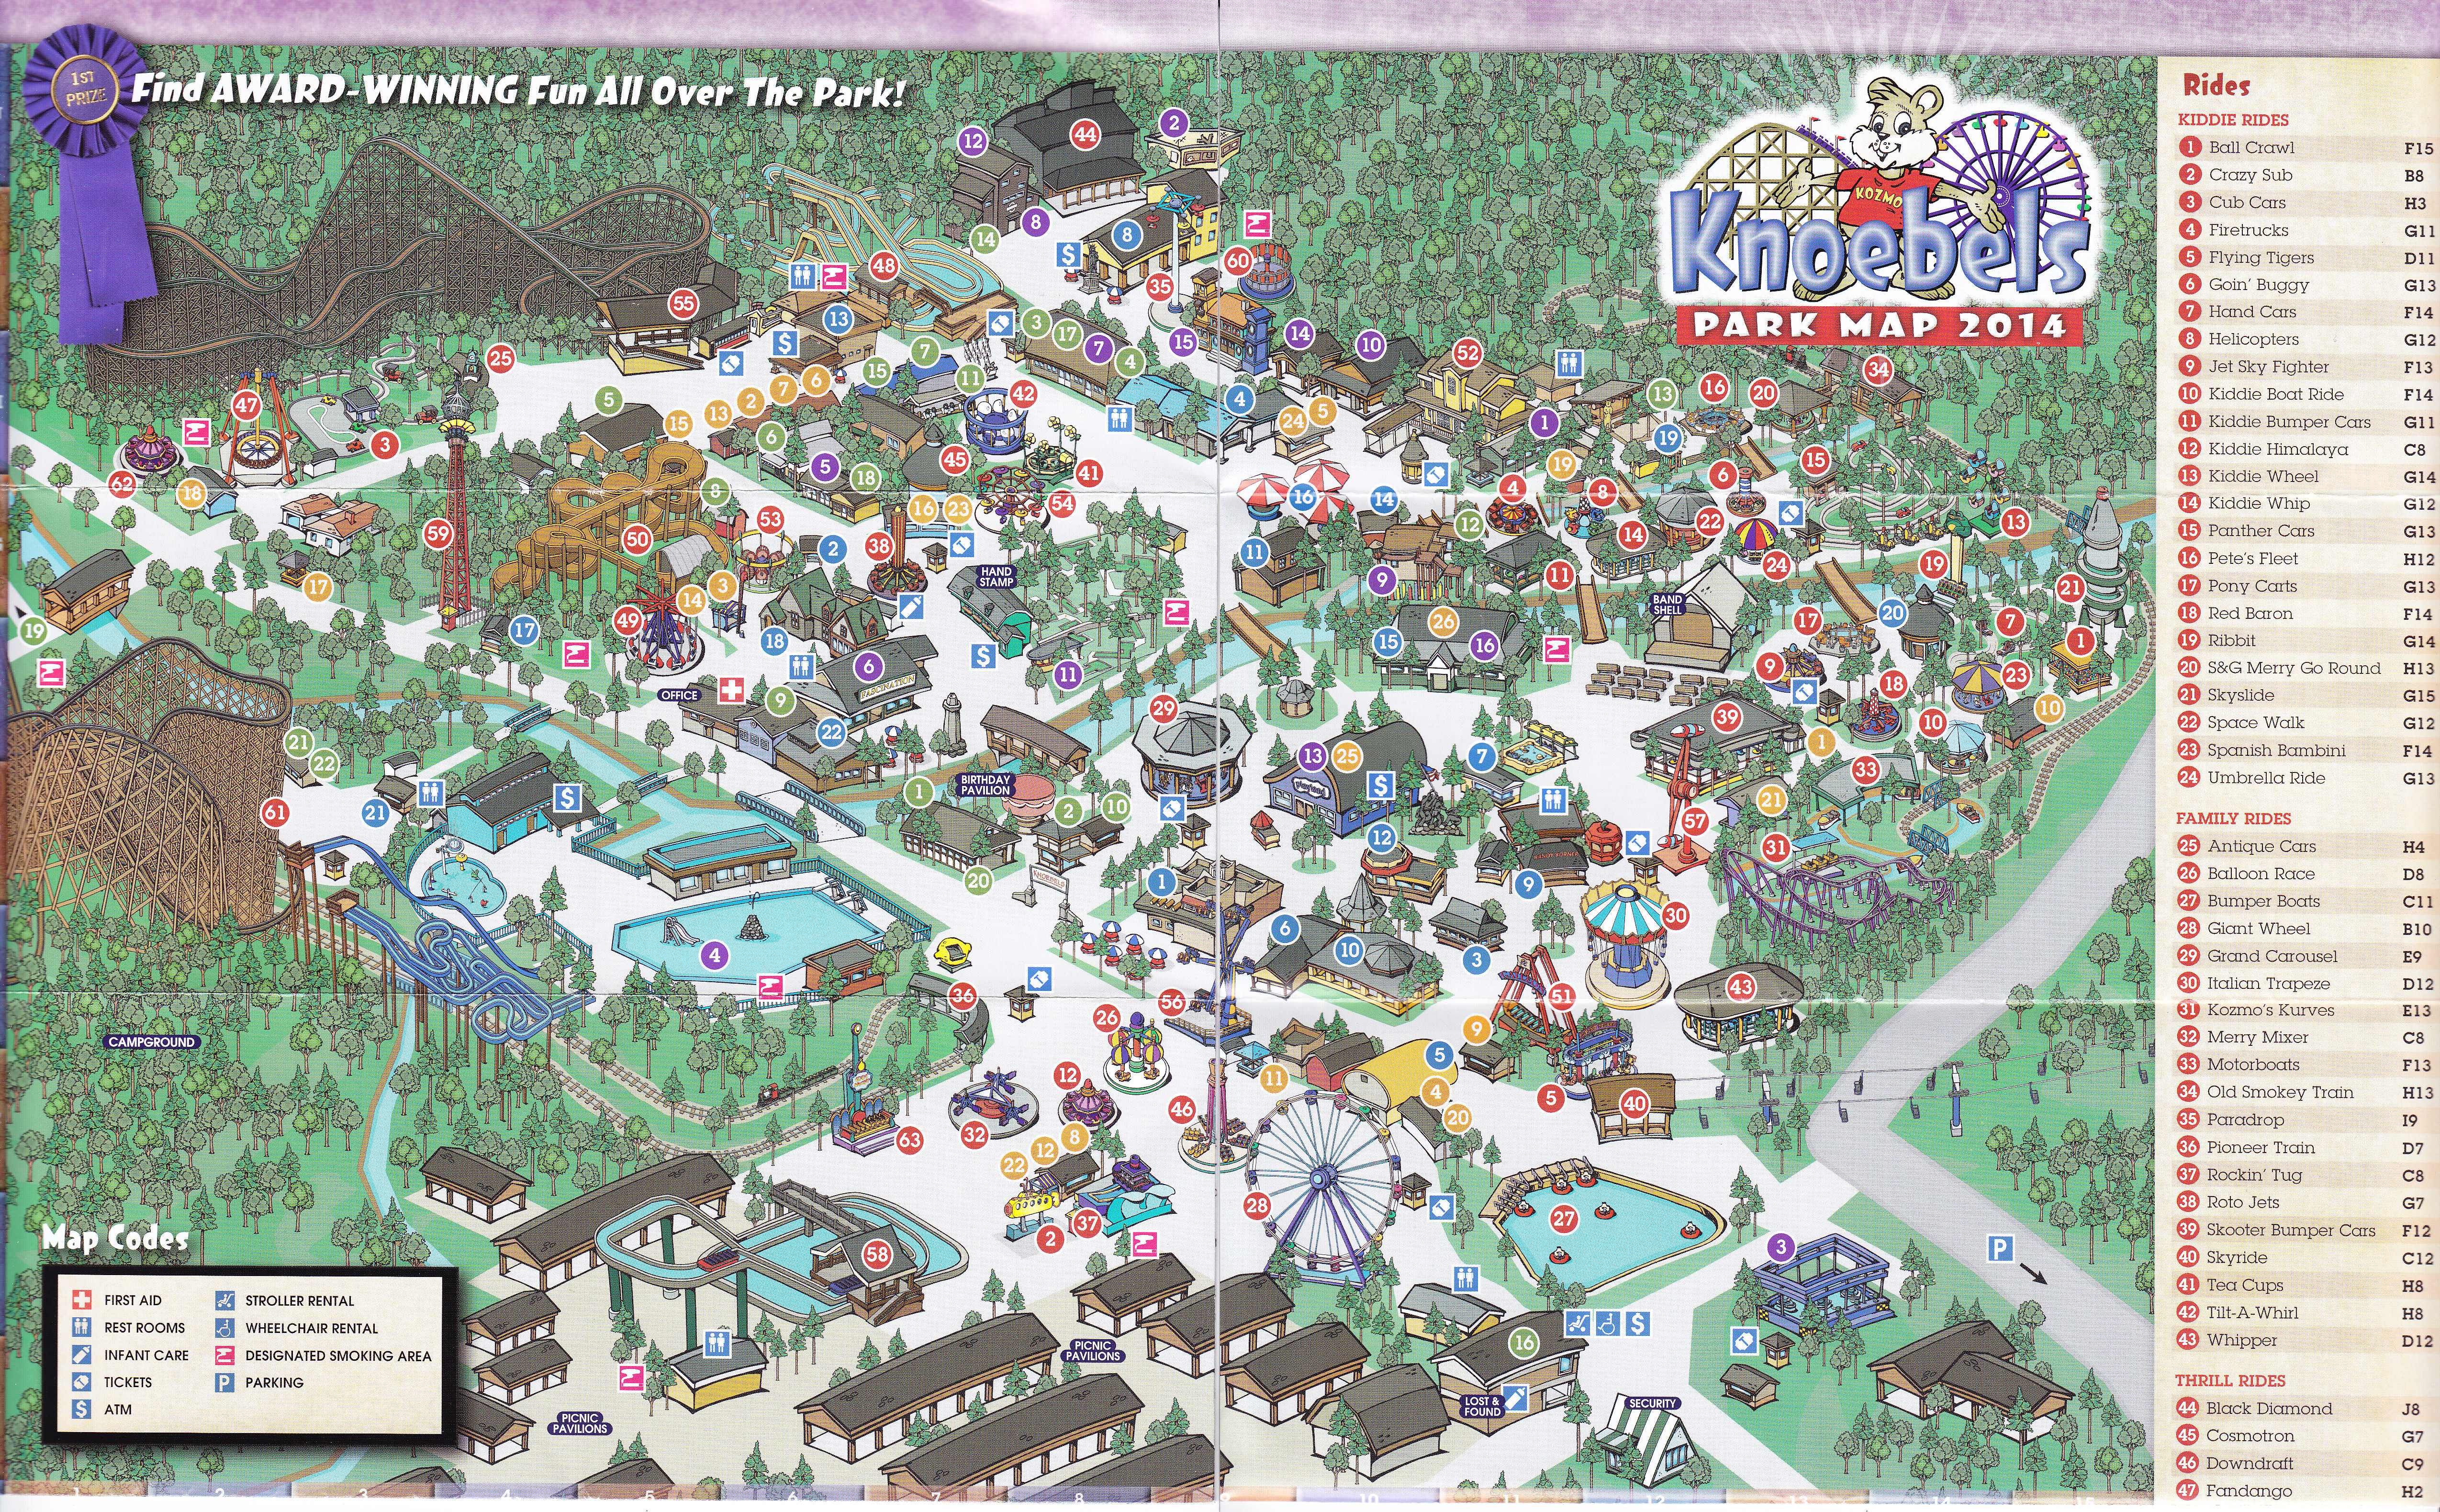 Knoebels Amut Park & Resort - 2014 Park Map on santa's village camping map, idlewild map, from valley forge road duncansville on map, silverwood theme park camping map, darien lake camping map, amusement map,